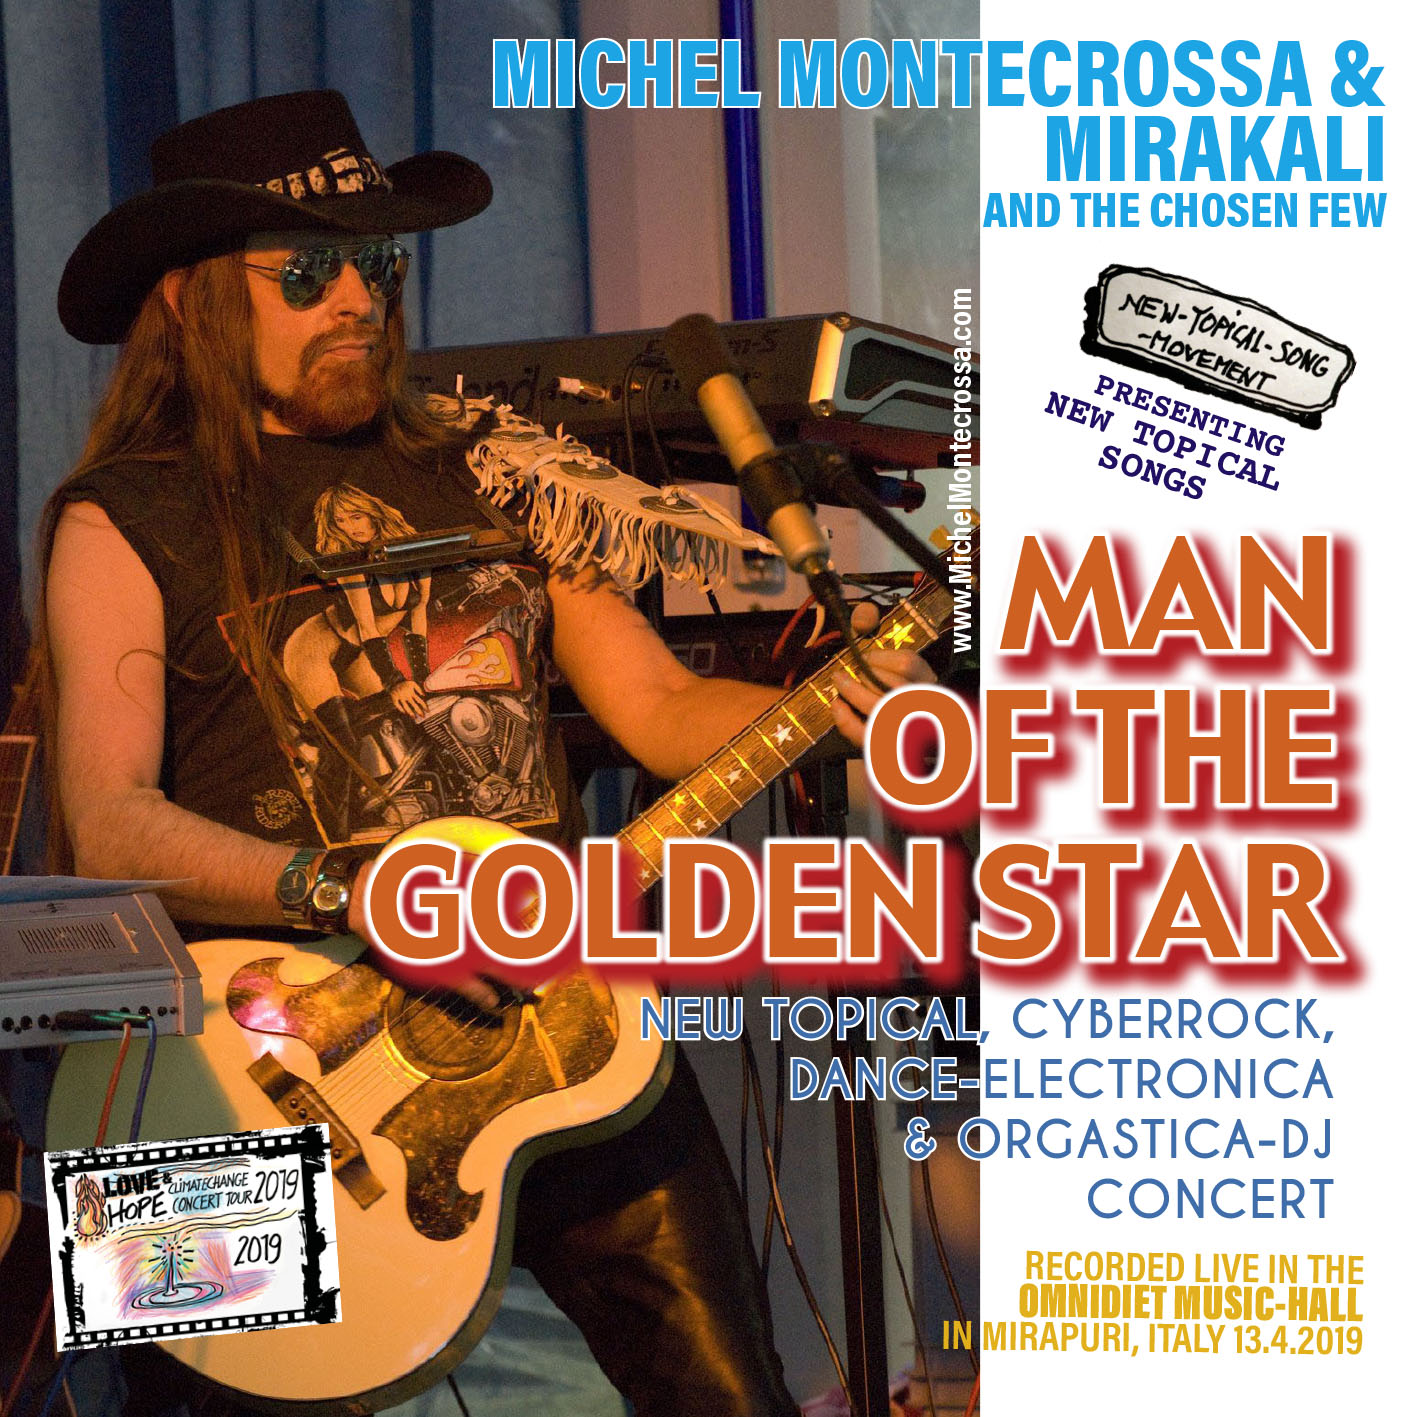 Man Of The Golden Star' New-Topical, Cyberrock, Dance